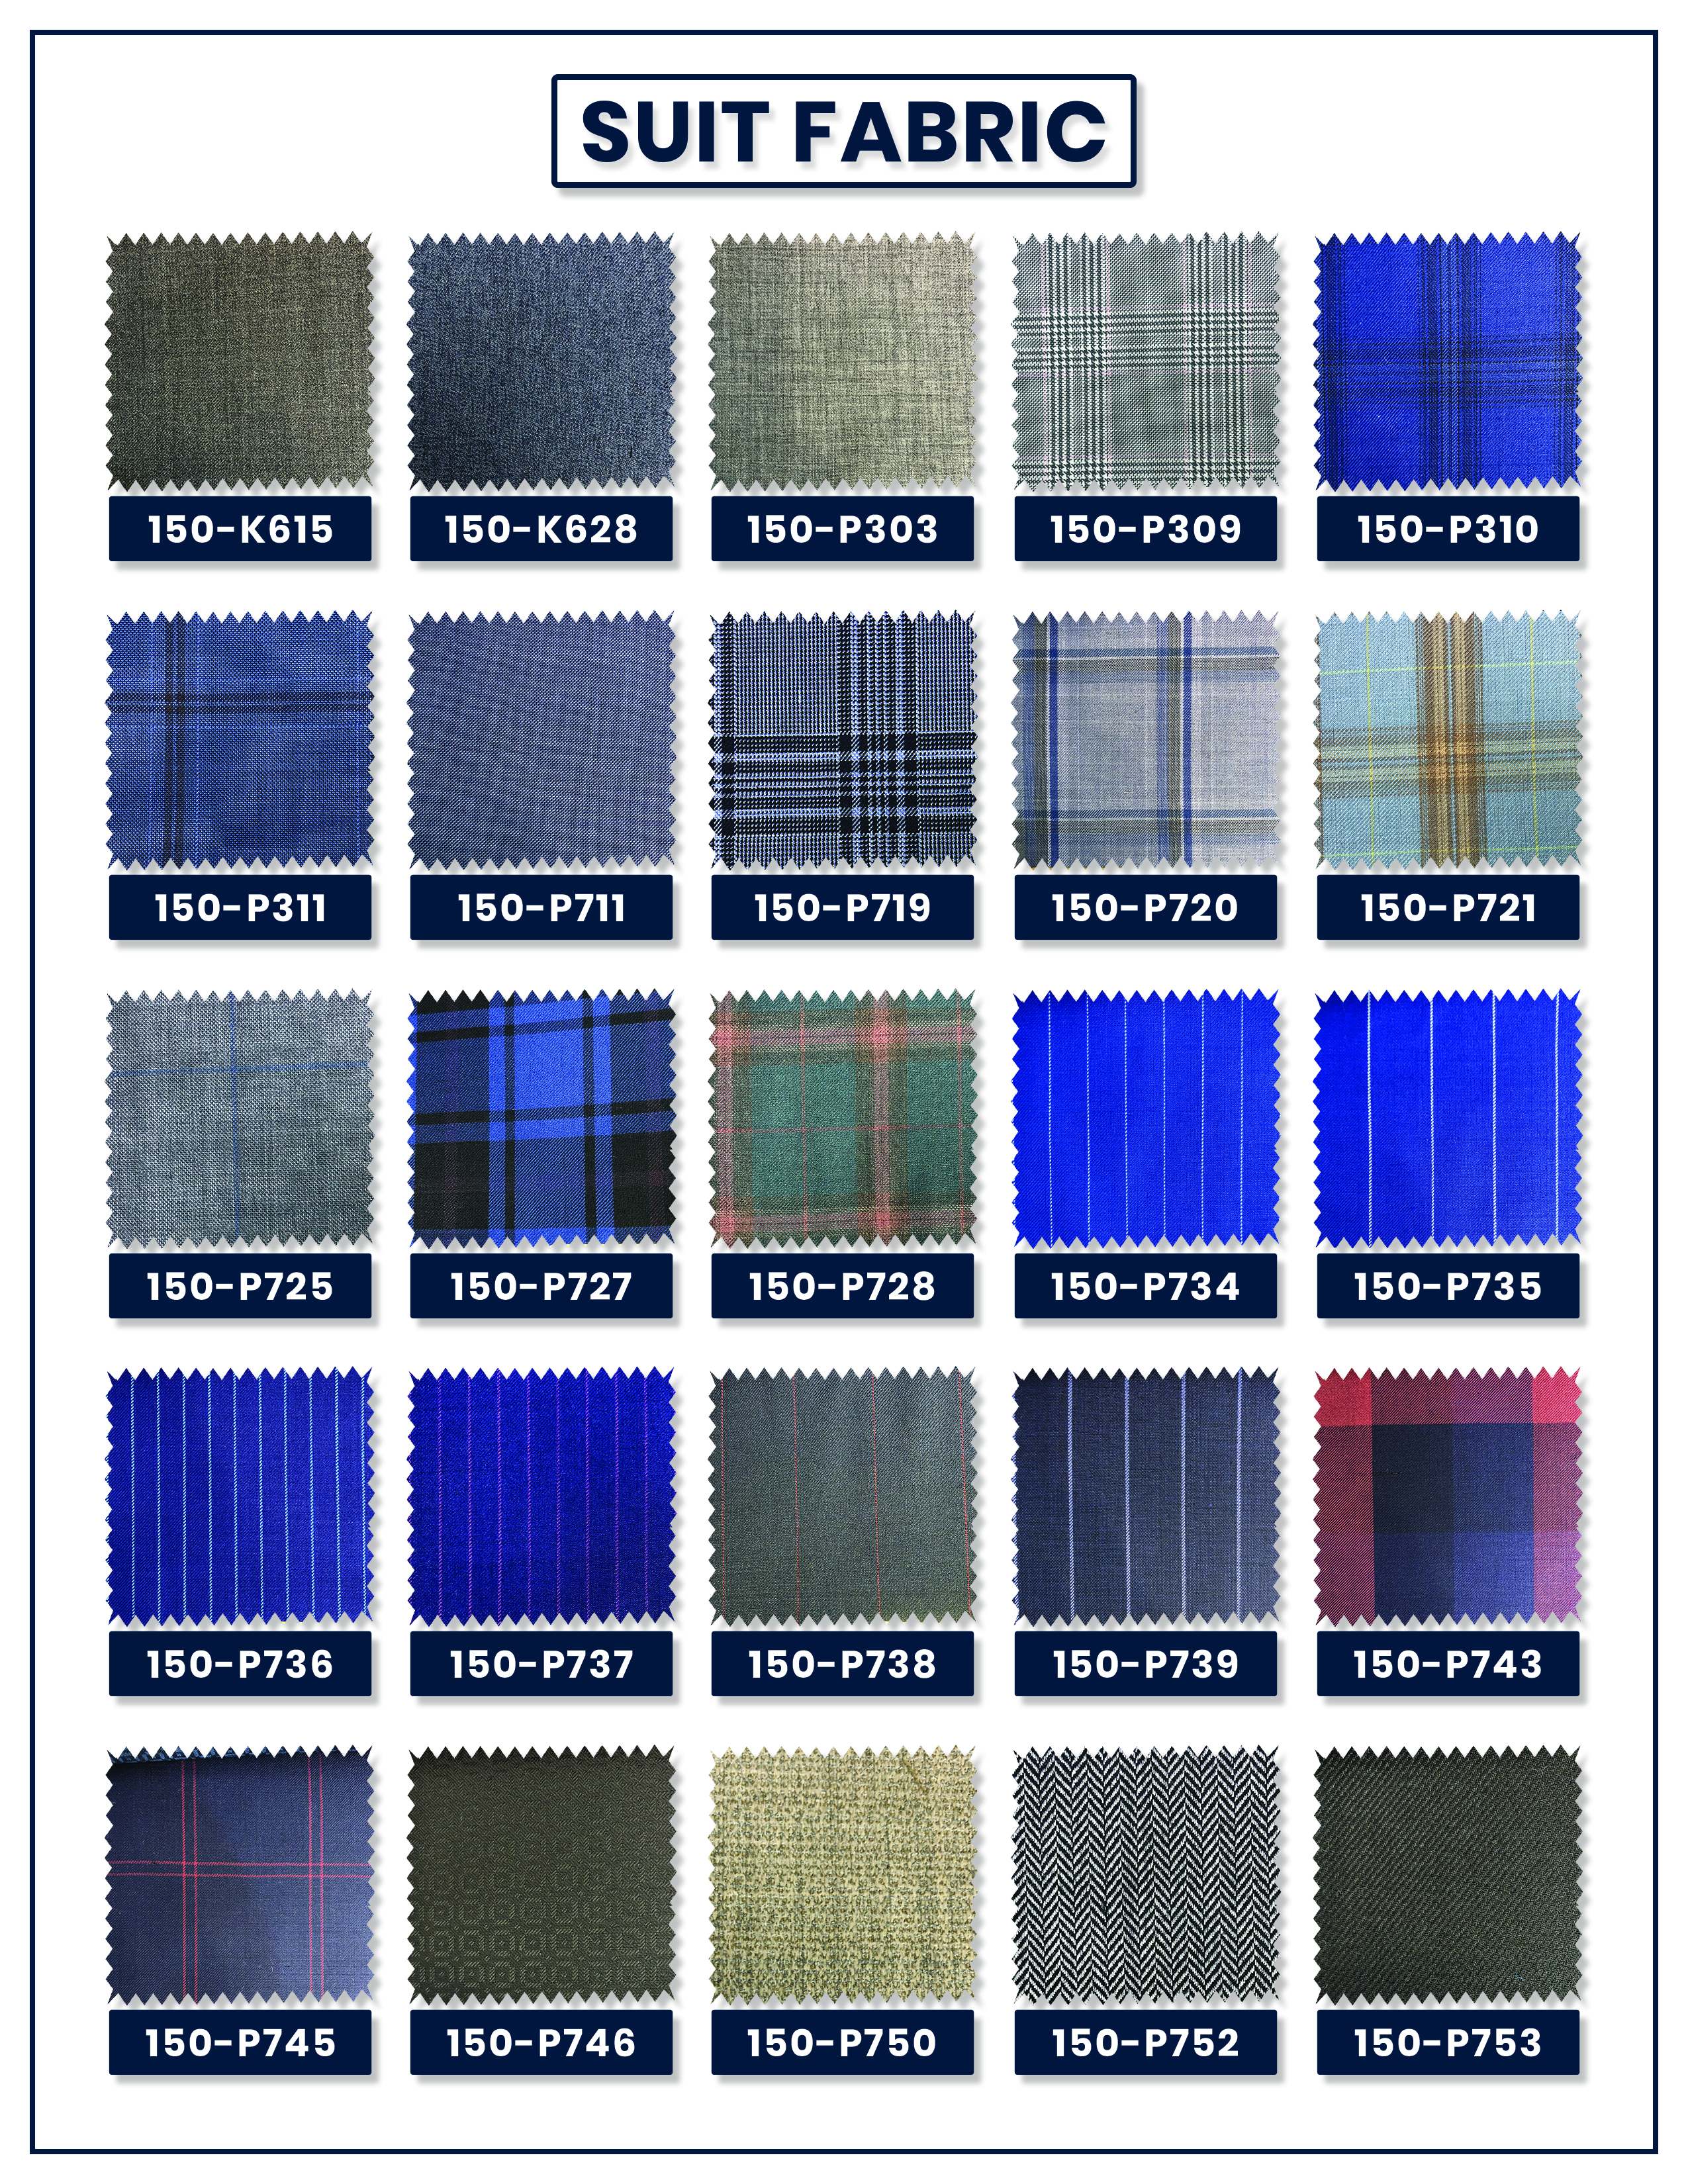 suit-fabric-page-4-cmyk-.jpg